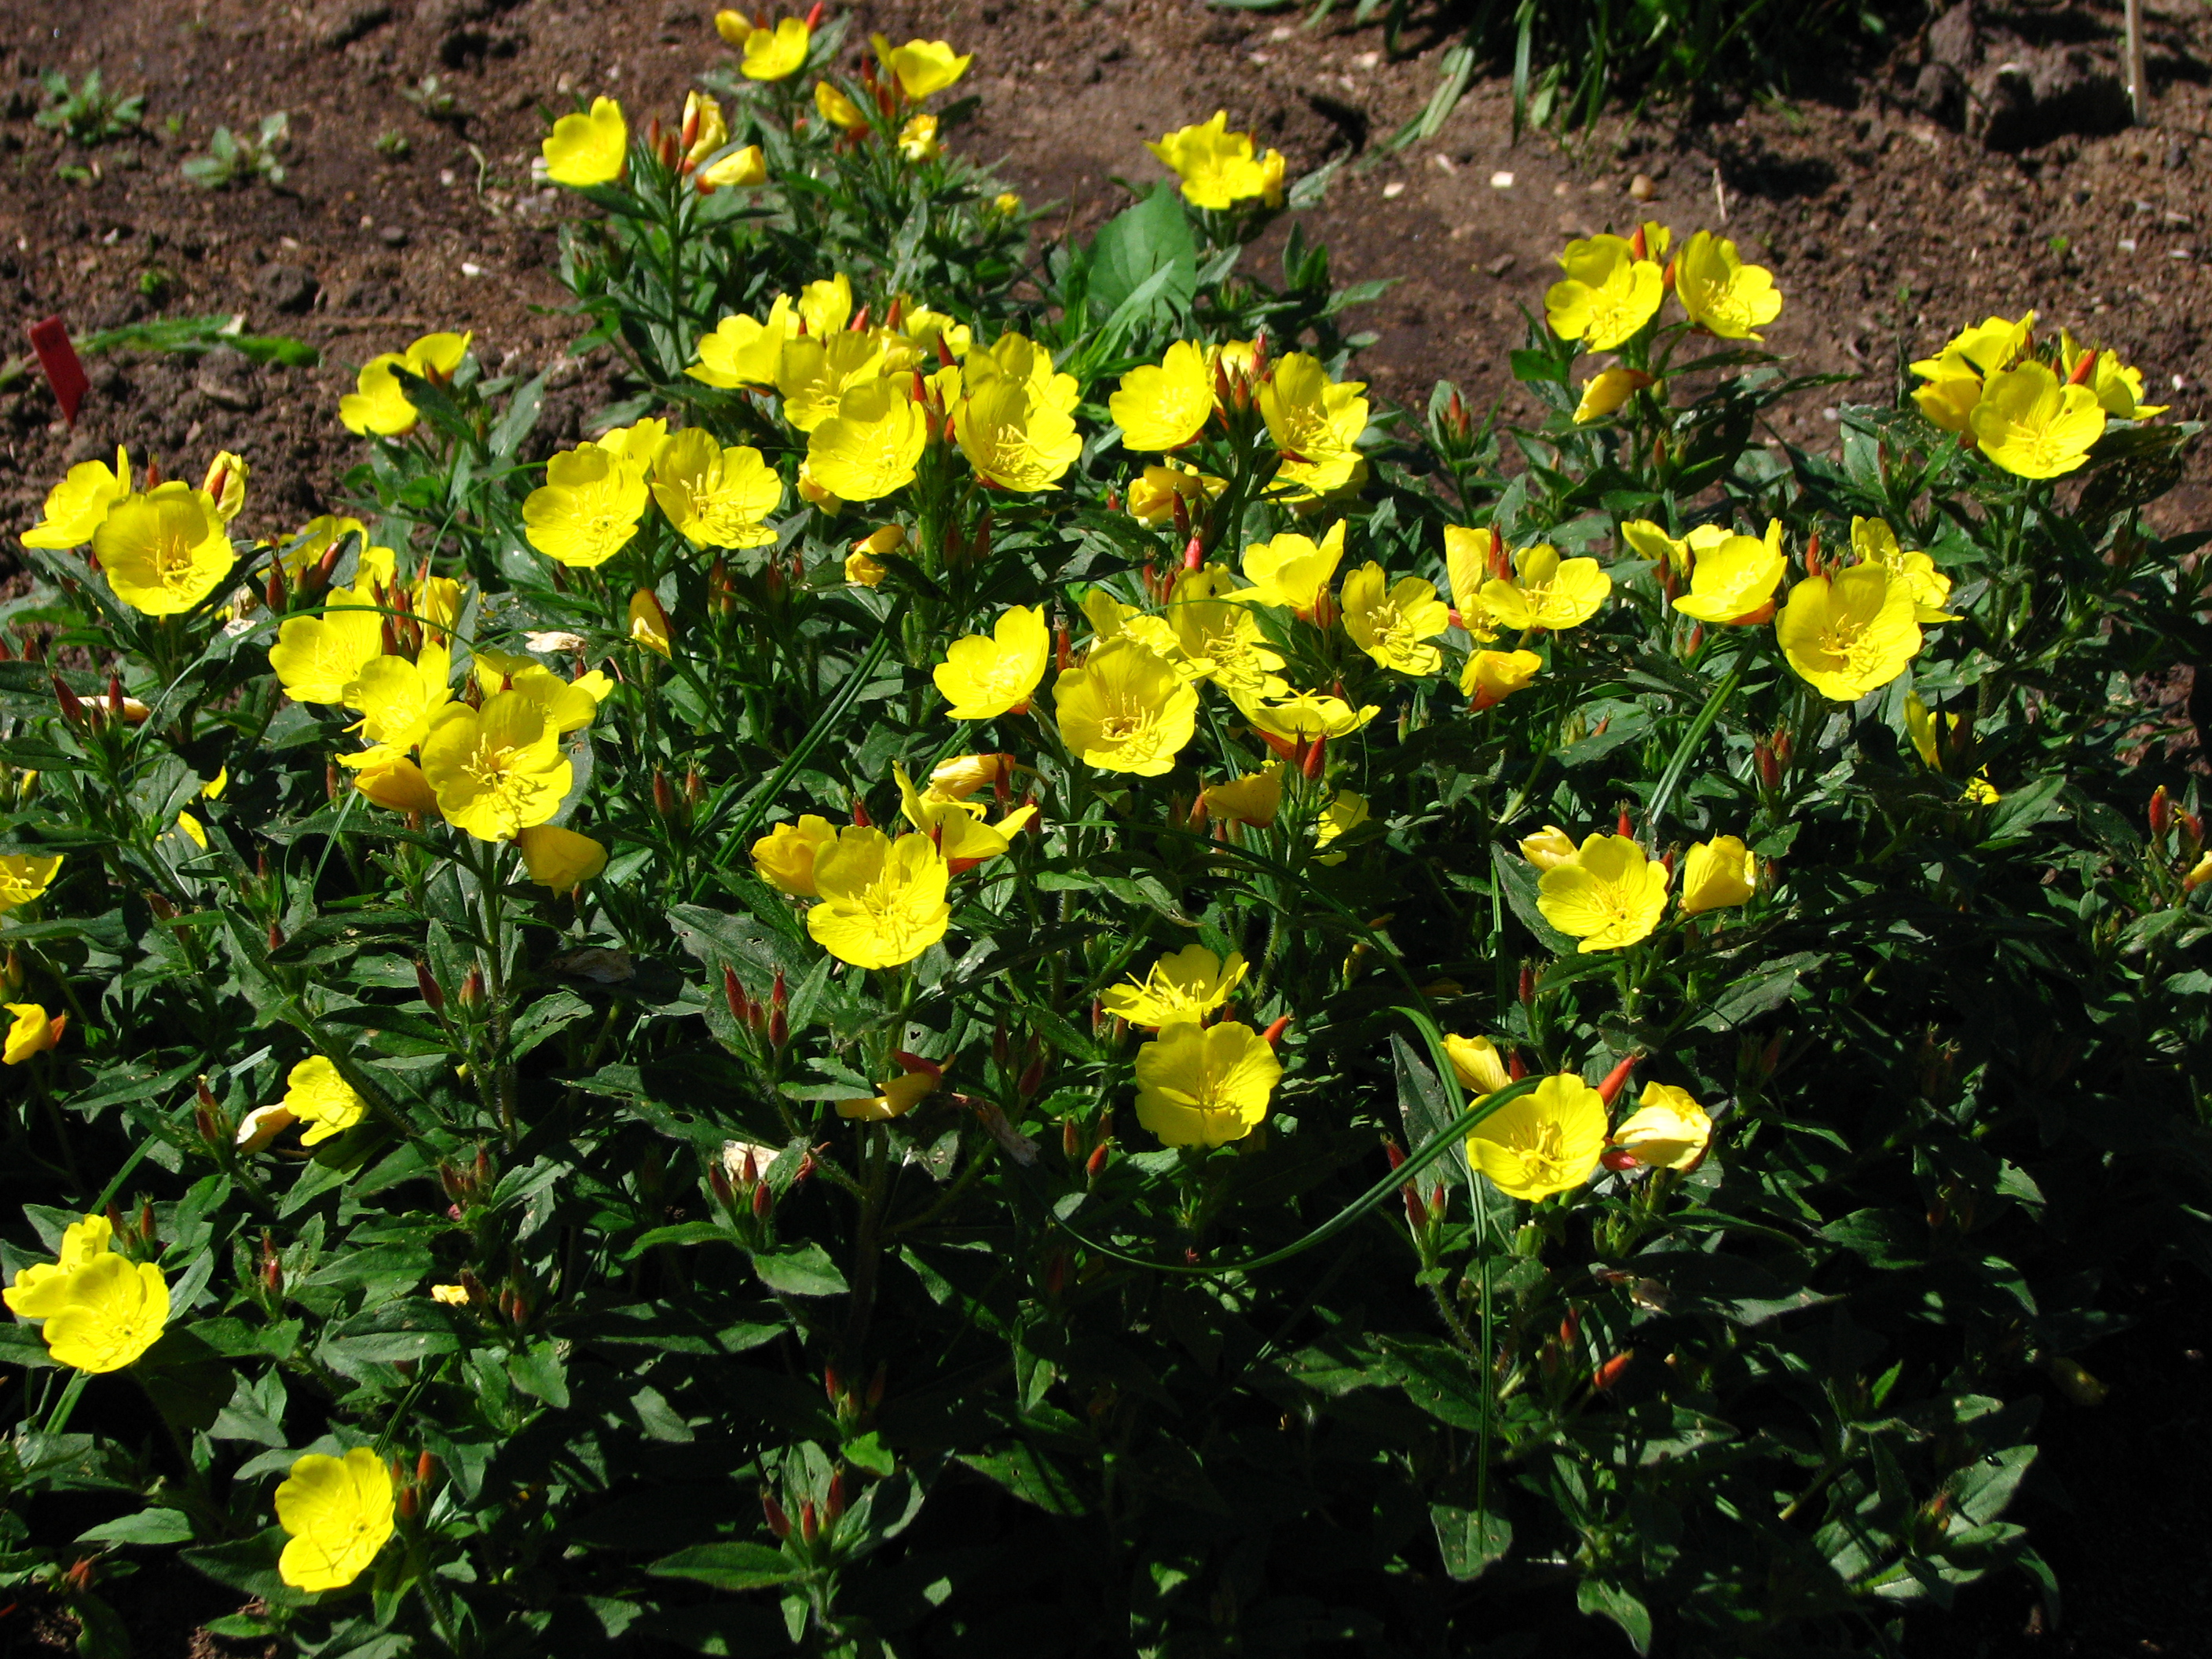 File:Oenothera fruticosa 03.JPG - Wikimedia Commons: https://commons.wikimedia.org/wiki/File:Oenothera_fruticosa_03.JPG